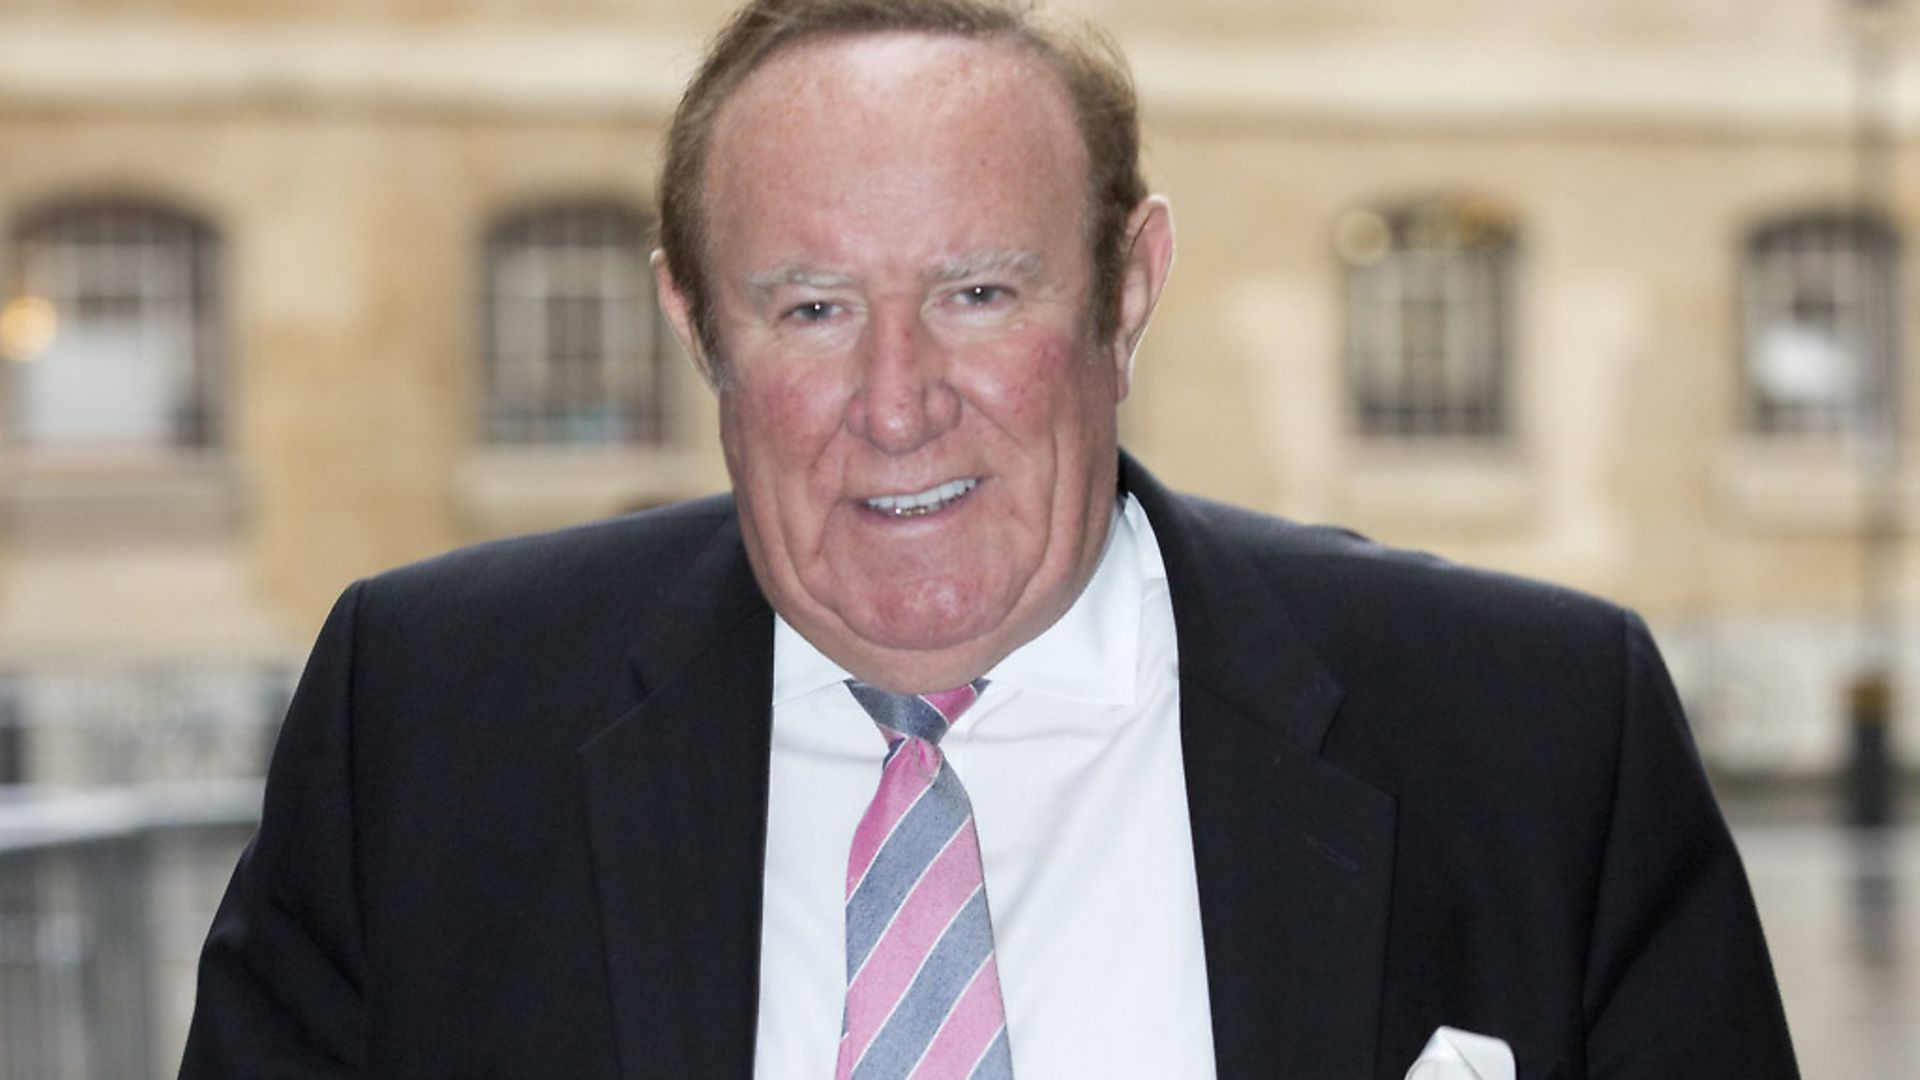 Andrew Neil arriving at BBC Broadcasting House. Picture: PA/Isabel Infantes/EMPICS Entertainment. - Credit: EMPICS Entertainment